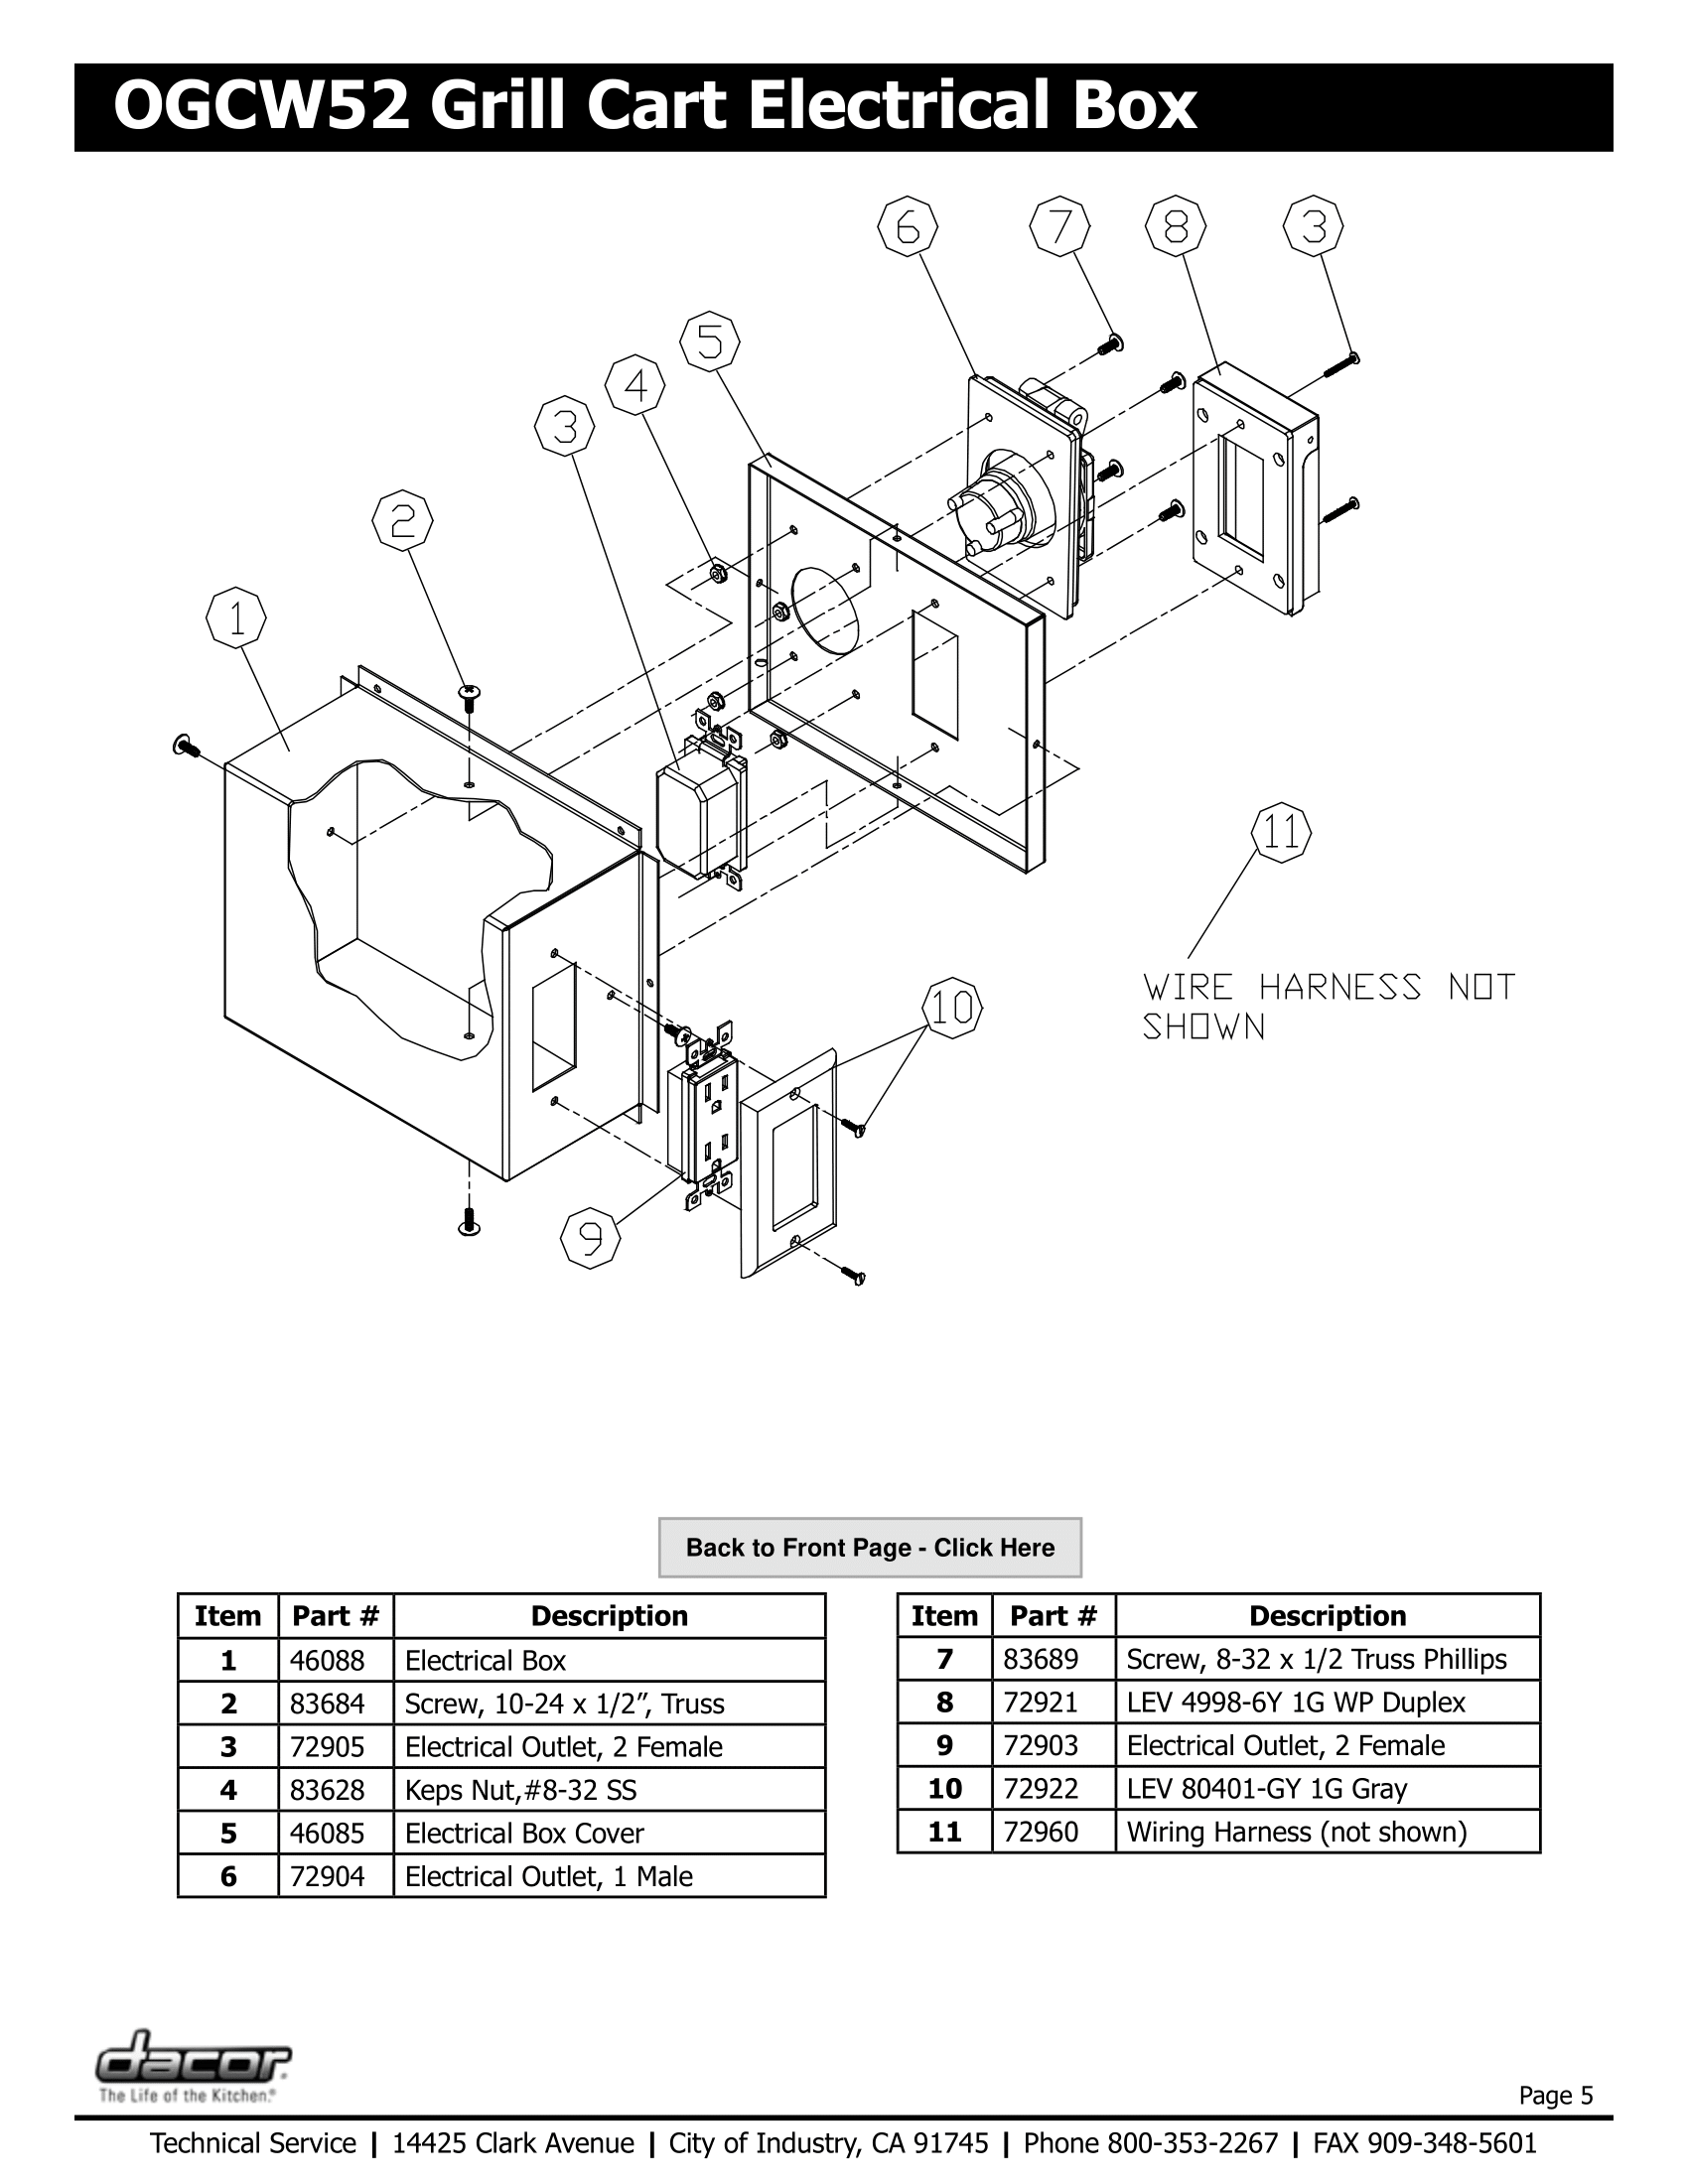 Dacor OGCW52 Electrical Box Schematic